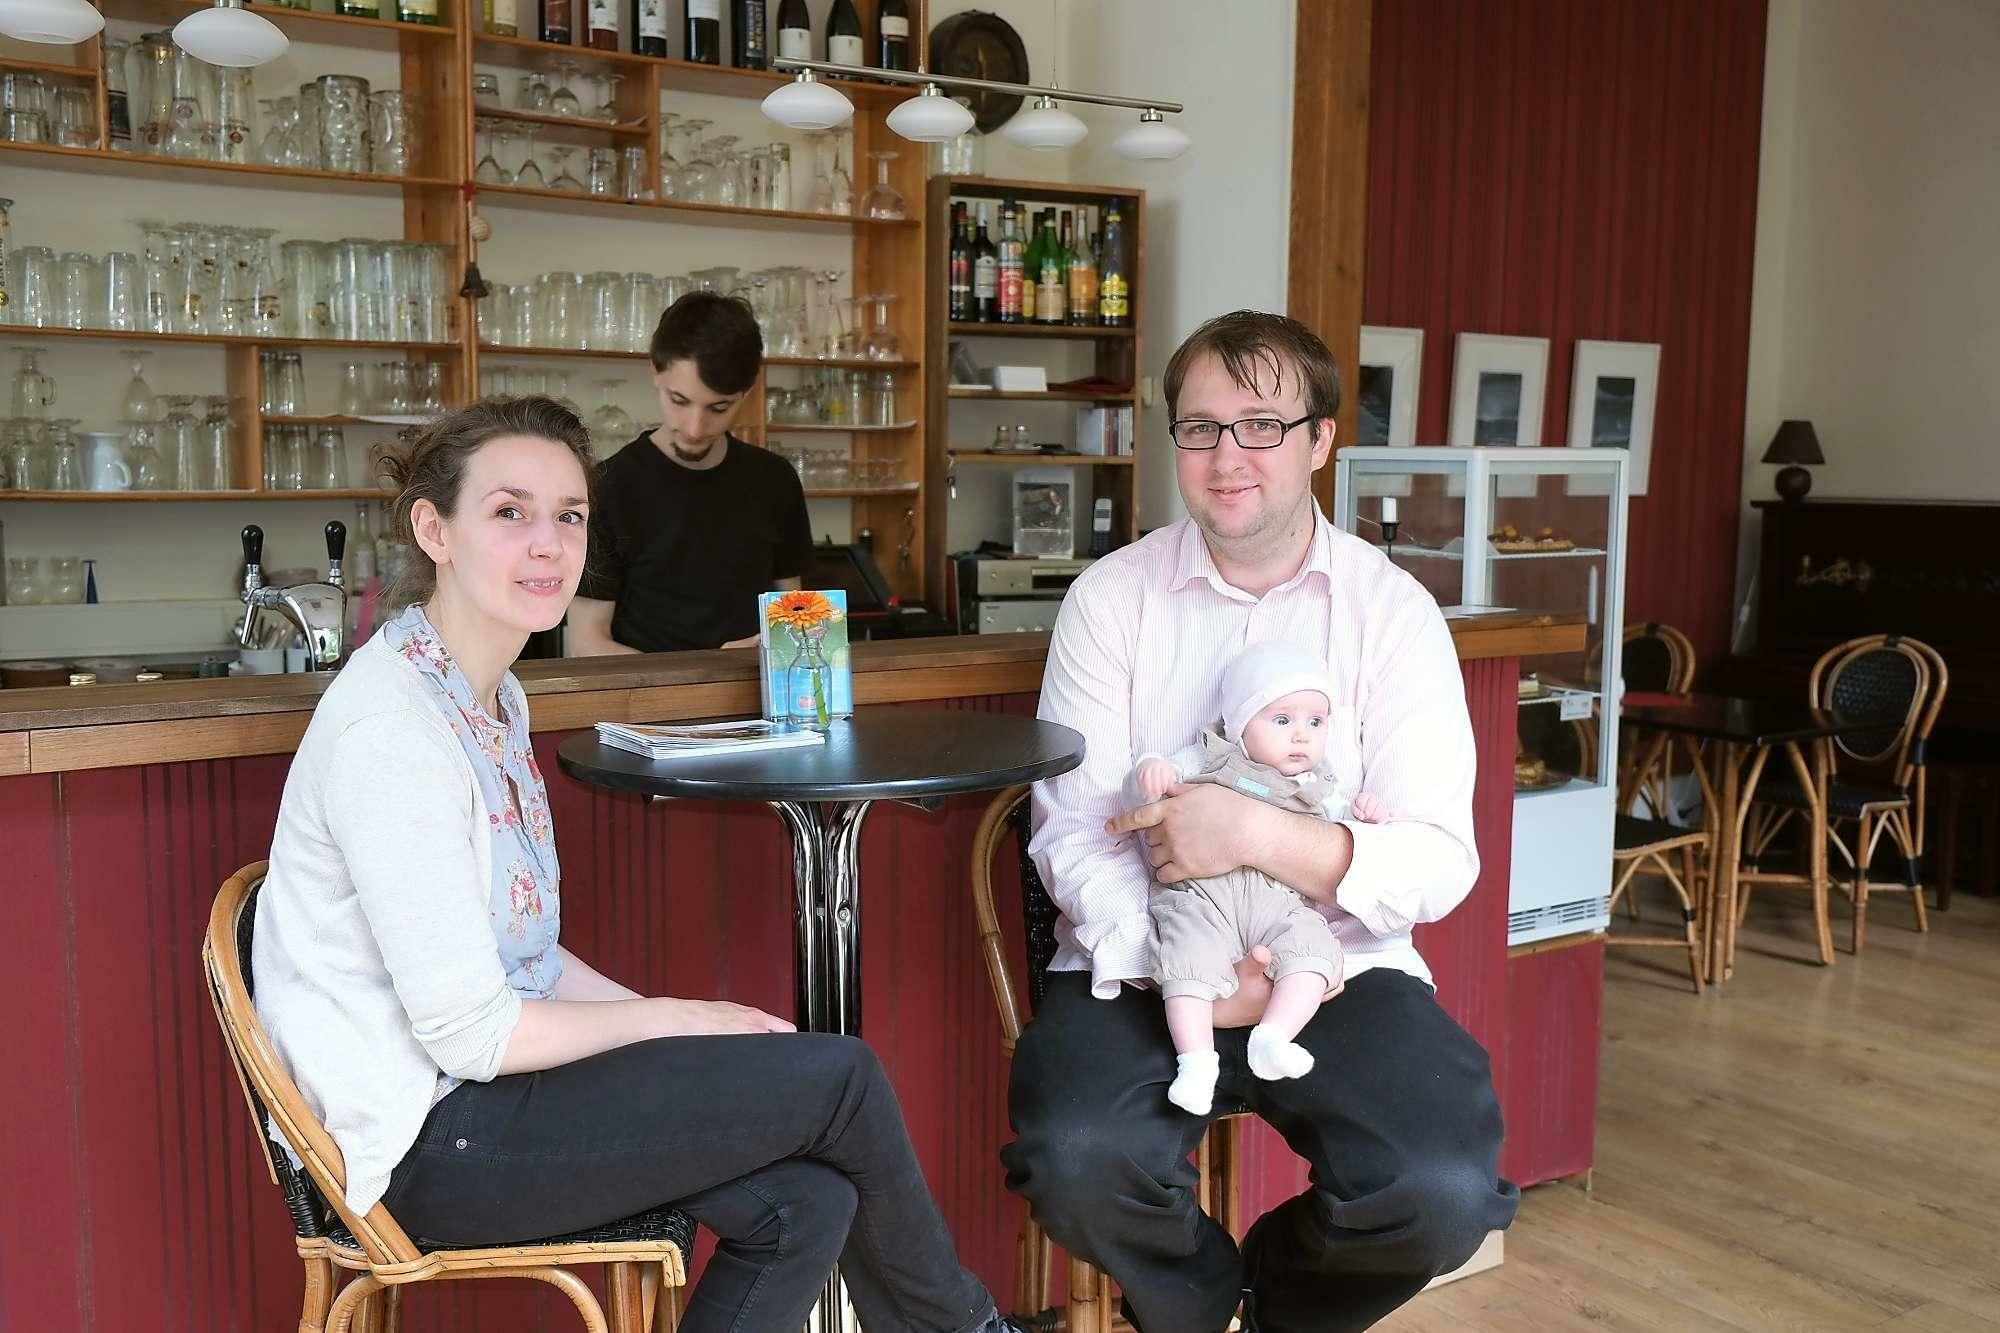 Da caf canap ist eine institution in pankow for Cafe canape pankow